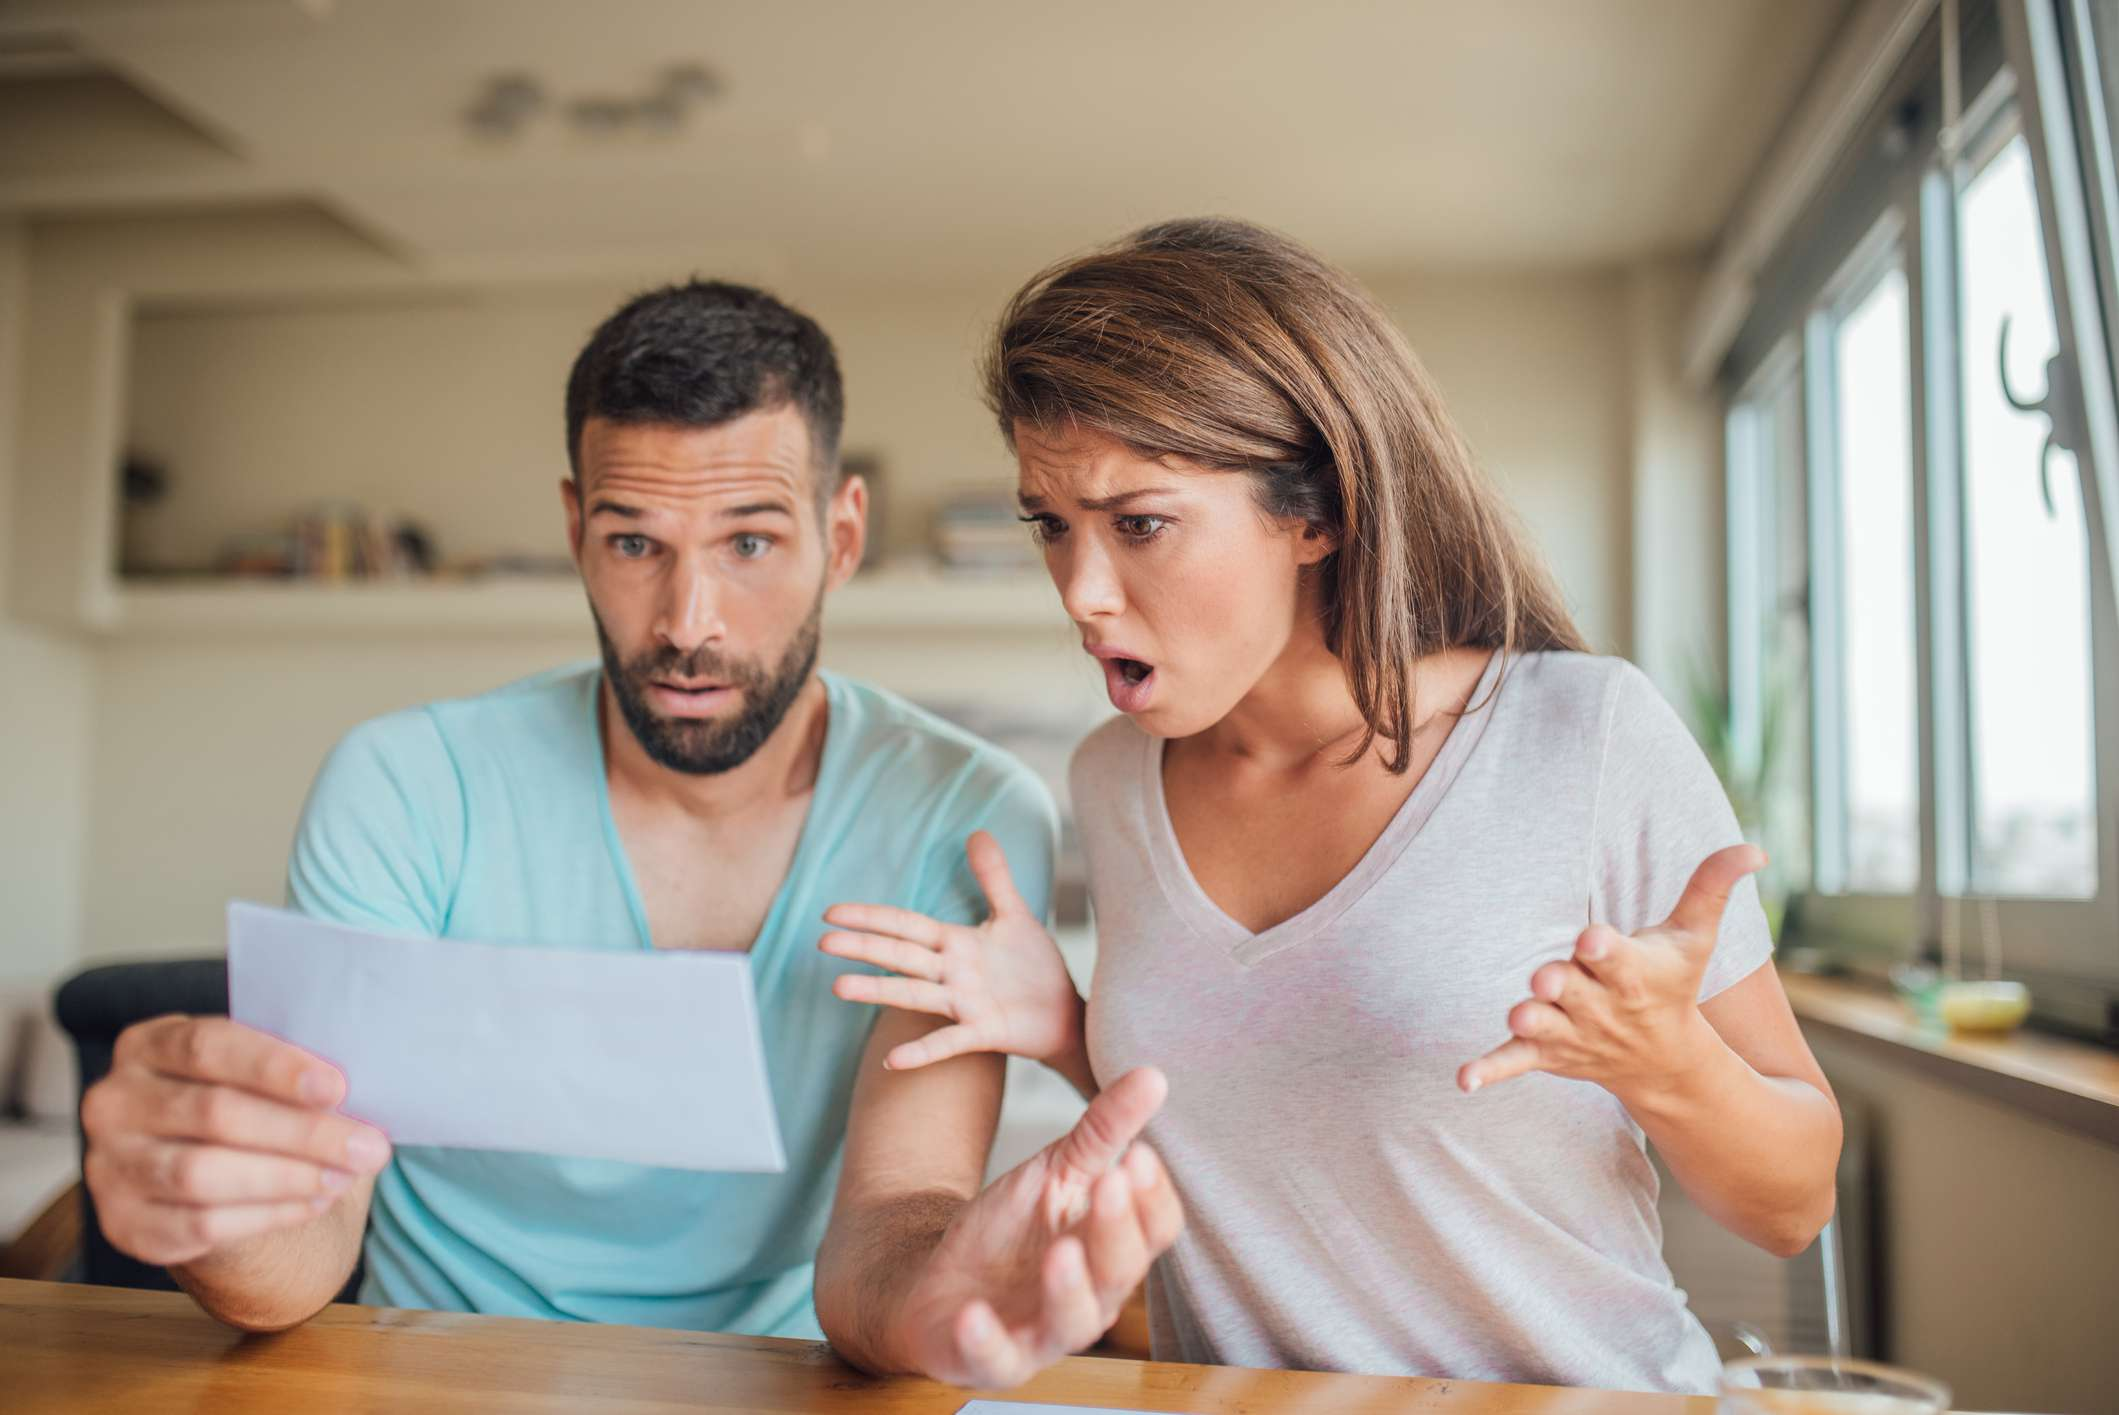 Clients surprised by the loss to their investment